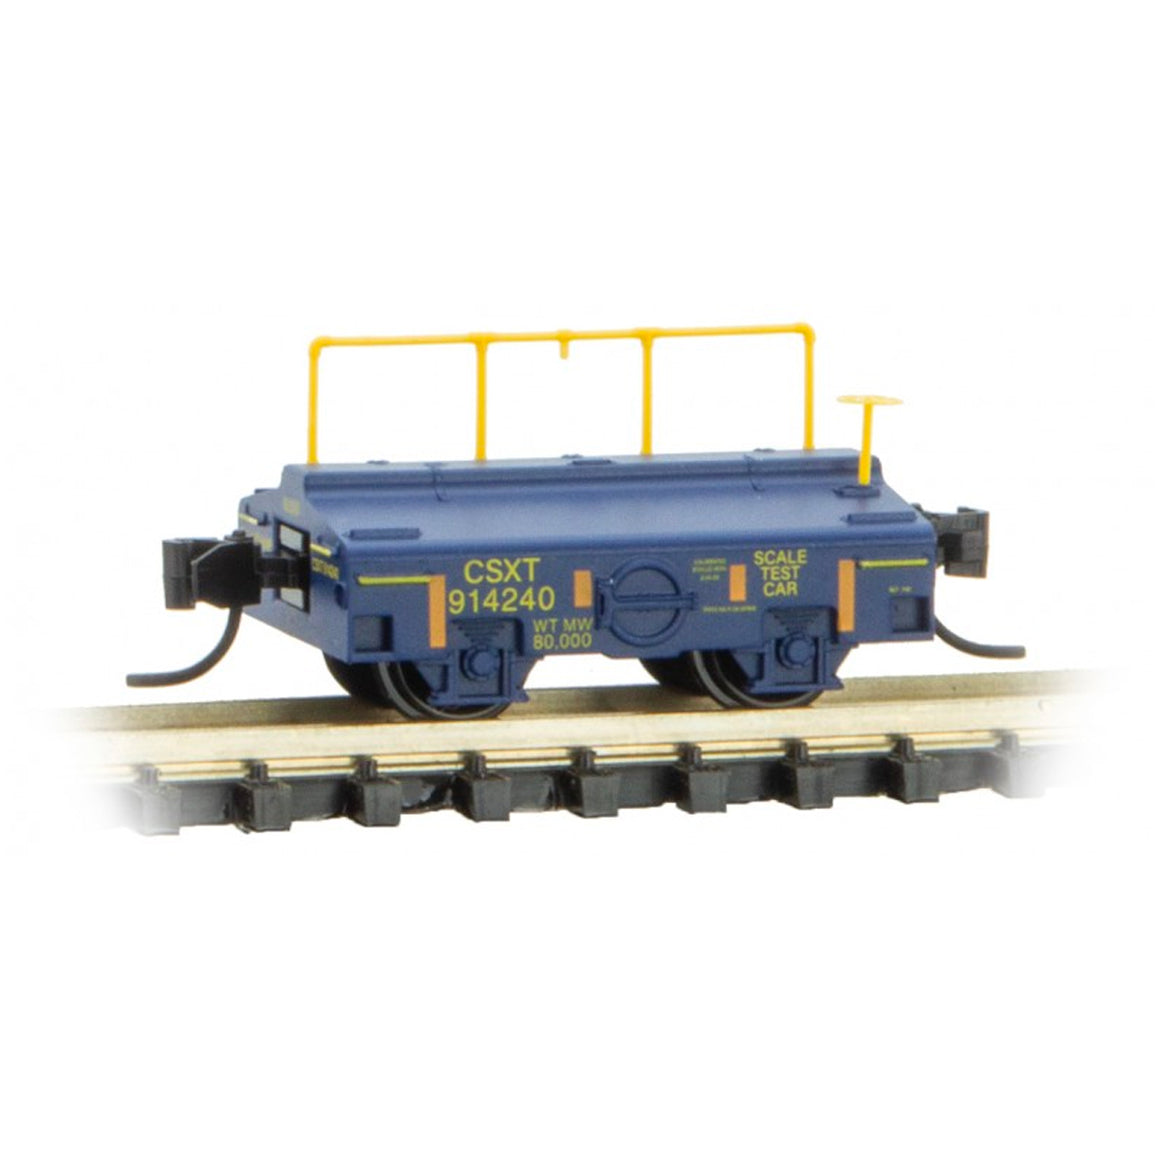 N Scale: Scale Test Car - CSX